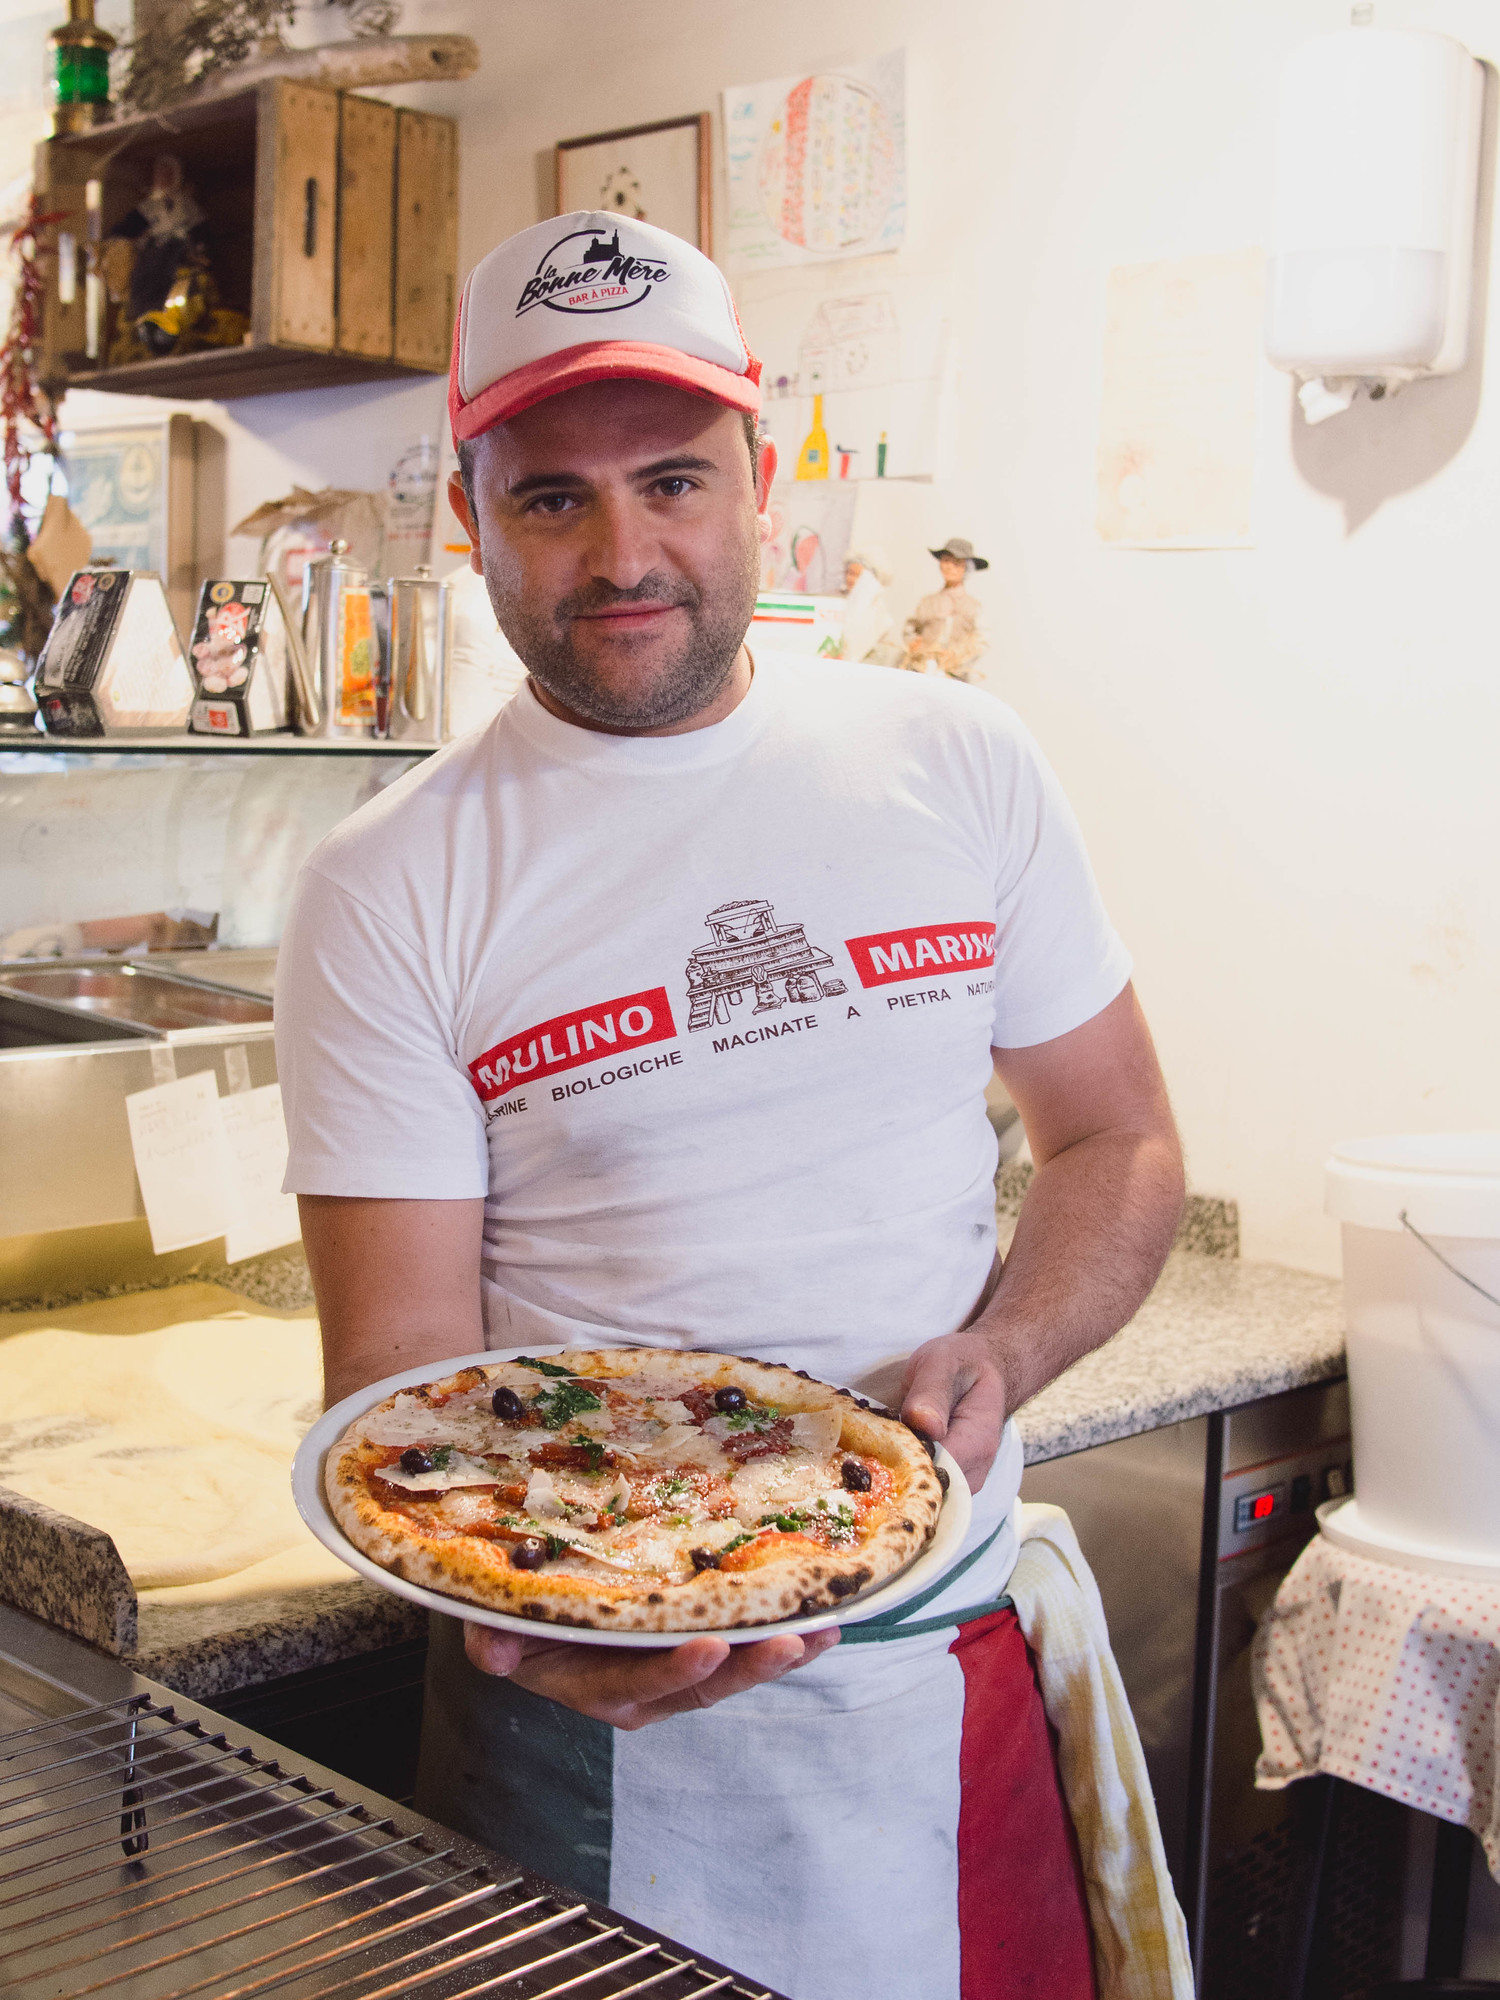 Surprised that pizza is recommended for what to eat in Marseille, the oldest city in France it has strong culinary influences from Italy, Spain and North Africa. Discover what else to eat!